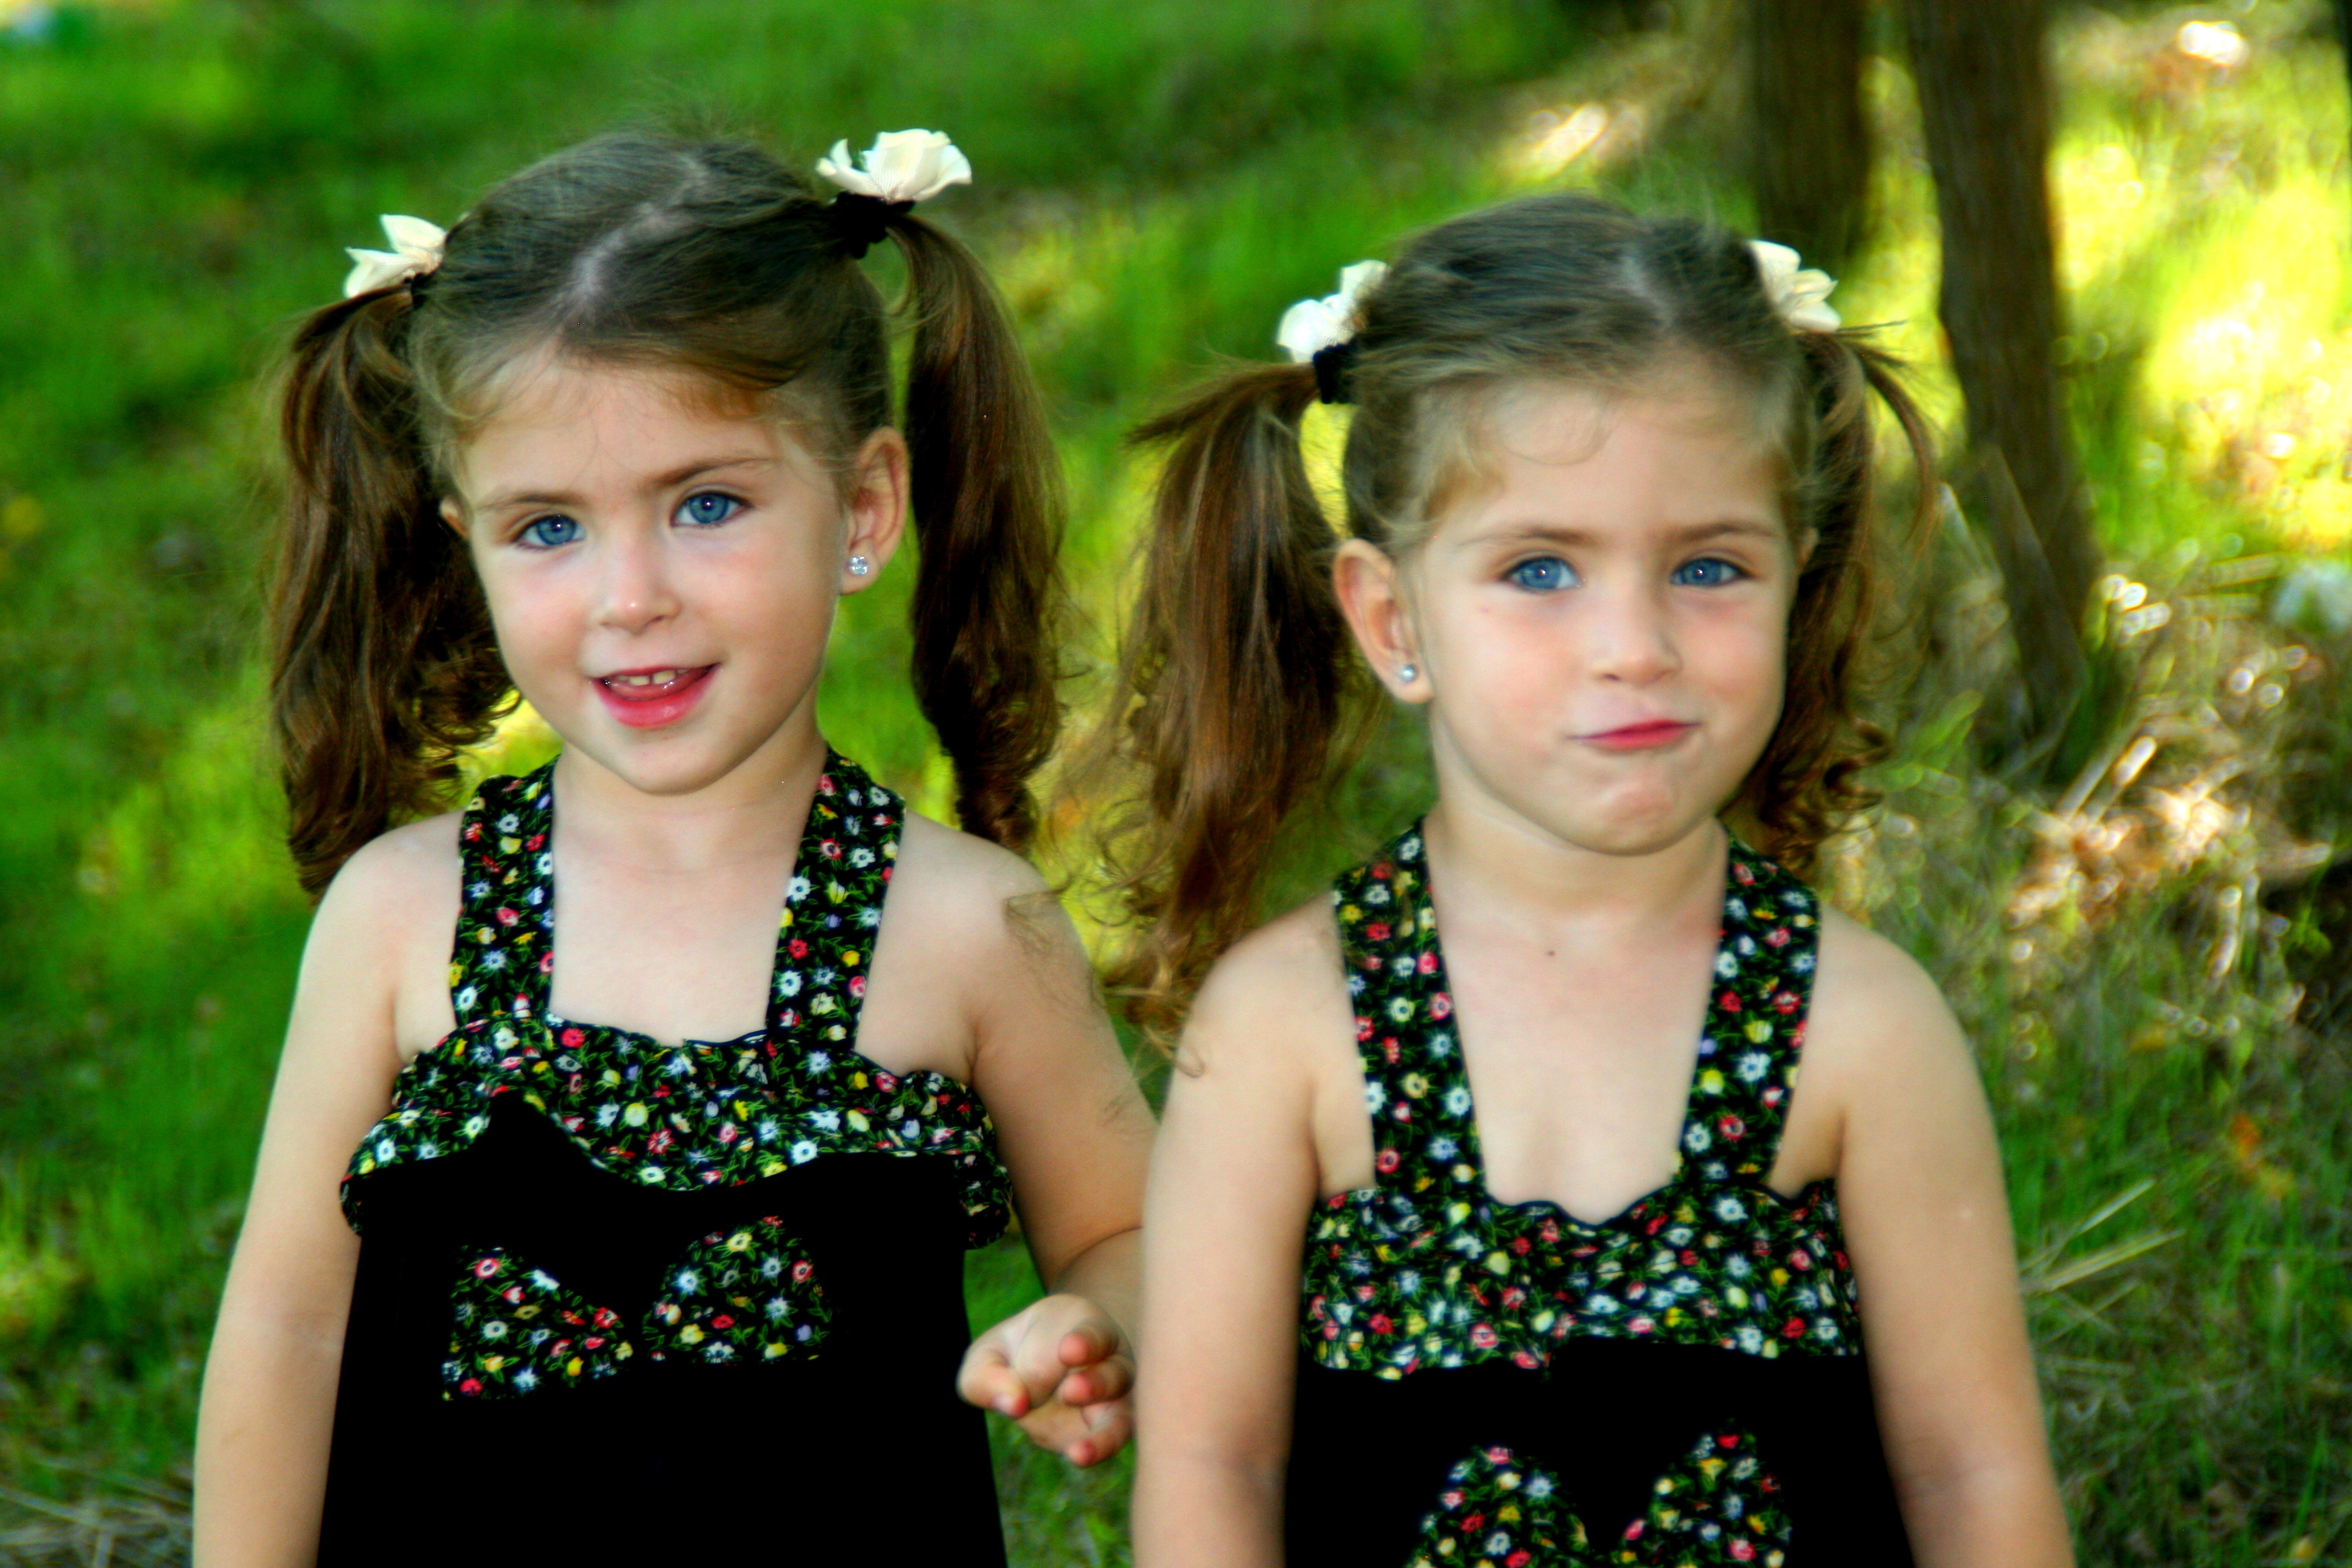 Two Sisters Twins With The Same Hairstyles In Identical